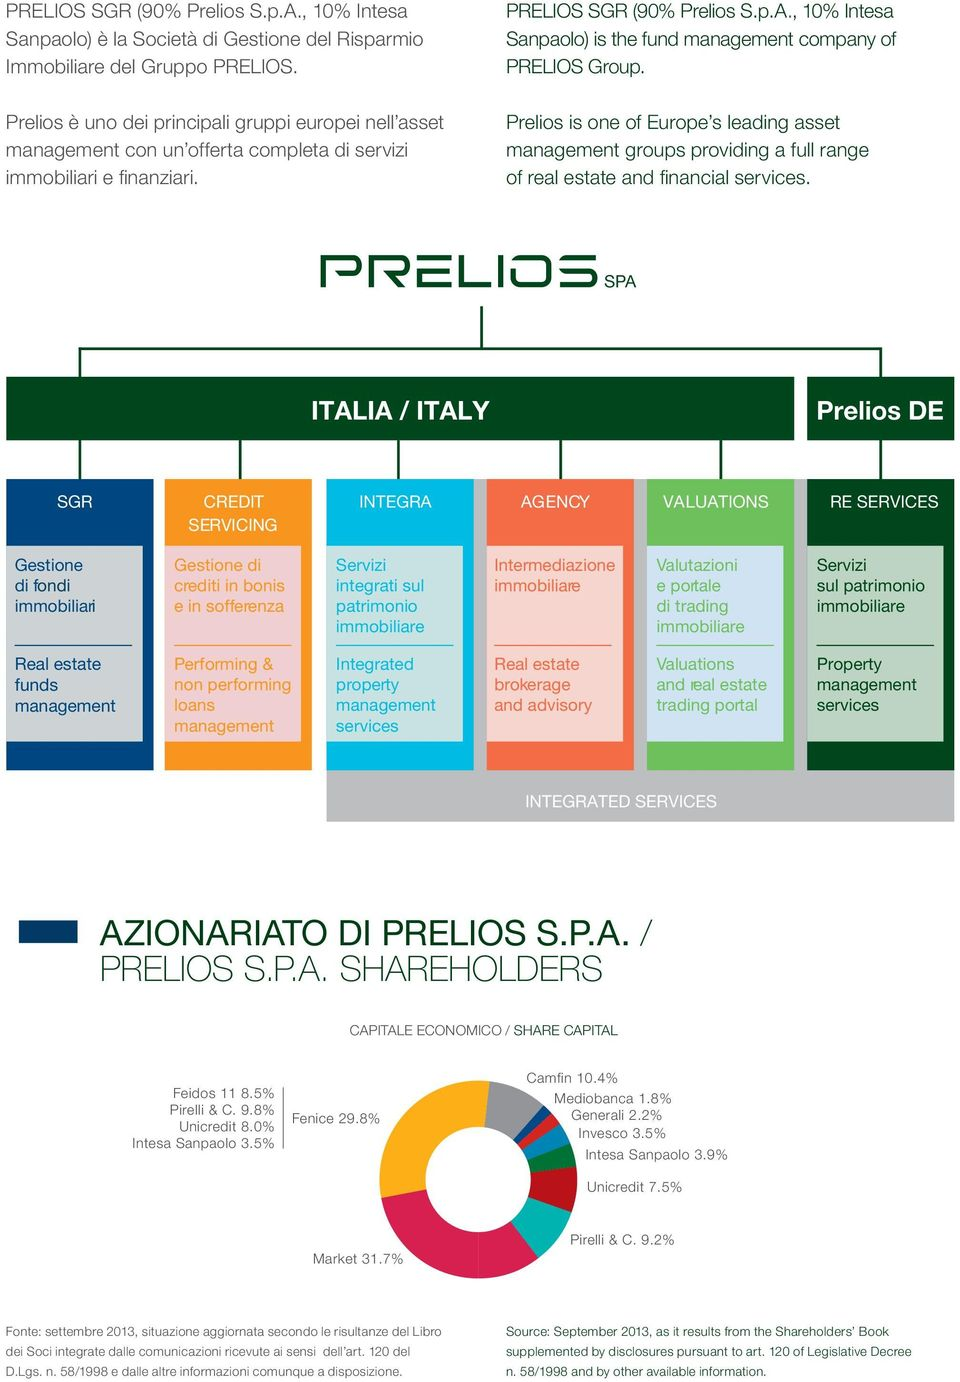 , 10% Intesa Sanpaolo) is the fund management company of PRELIOS Group. Prelios is one of Europe s leading asset management groups providing a full range of real estate and financial services.